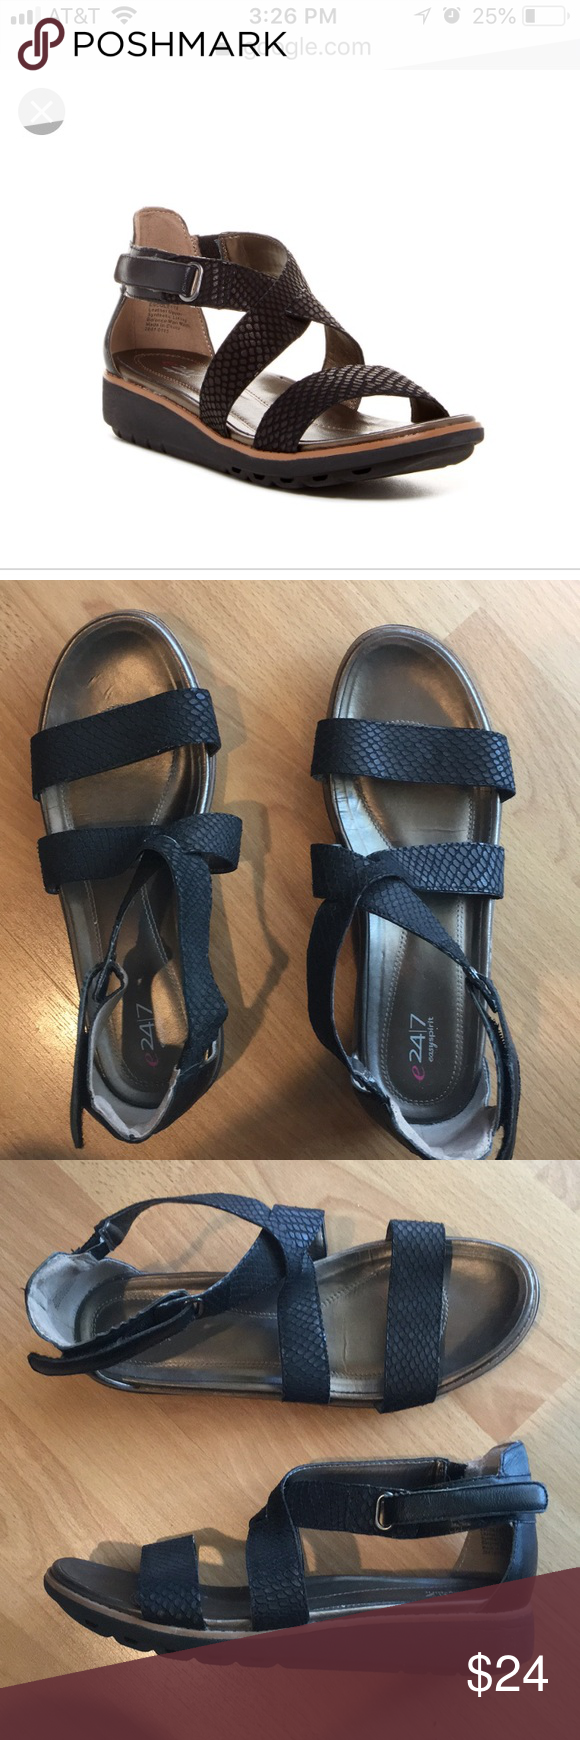 6acb59fcf265 Easy Spirit Escolette Flatform gladiator sandal So comfy with adjustable  ankle strap and Easy Spirit 24 7 comfort technology. Leather upper for even  more ...